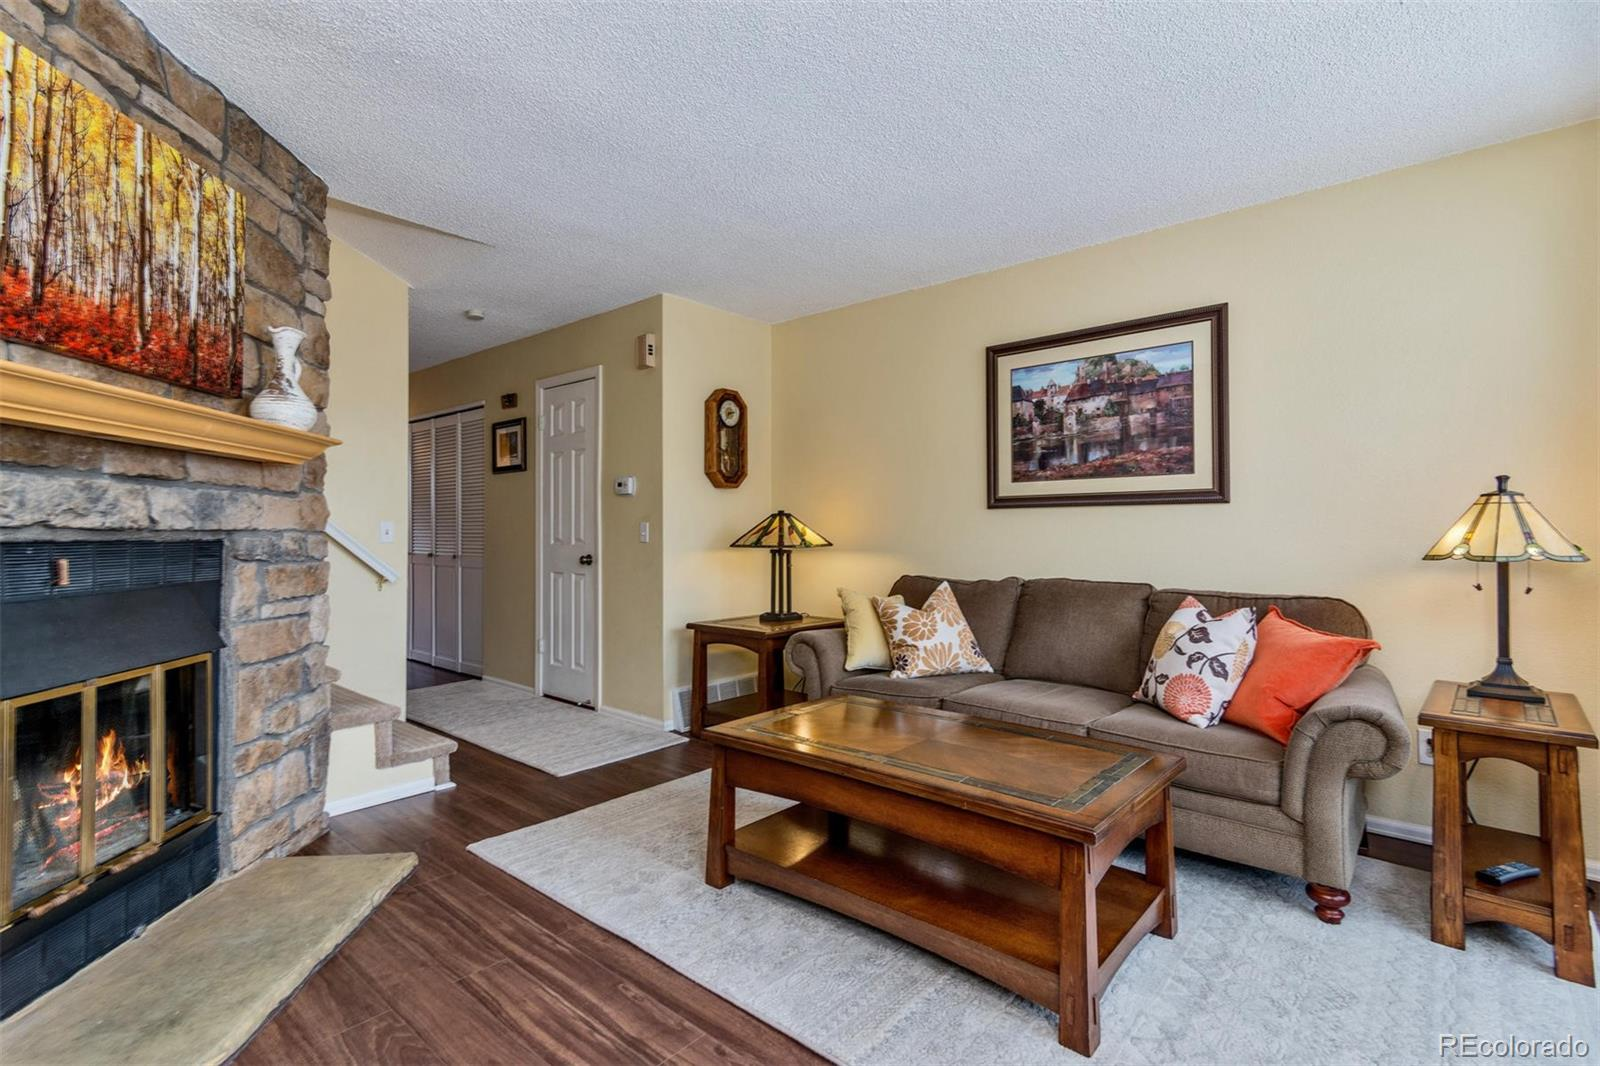 MLS# 6379353 - 5 - 8846 W Dartmouth Place, Lakewood, CO 80227